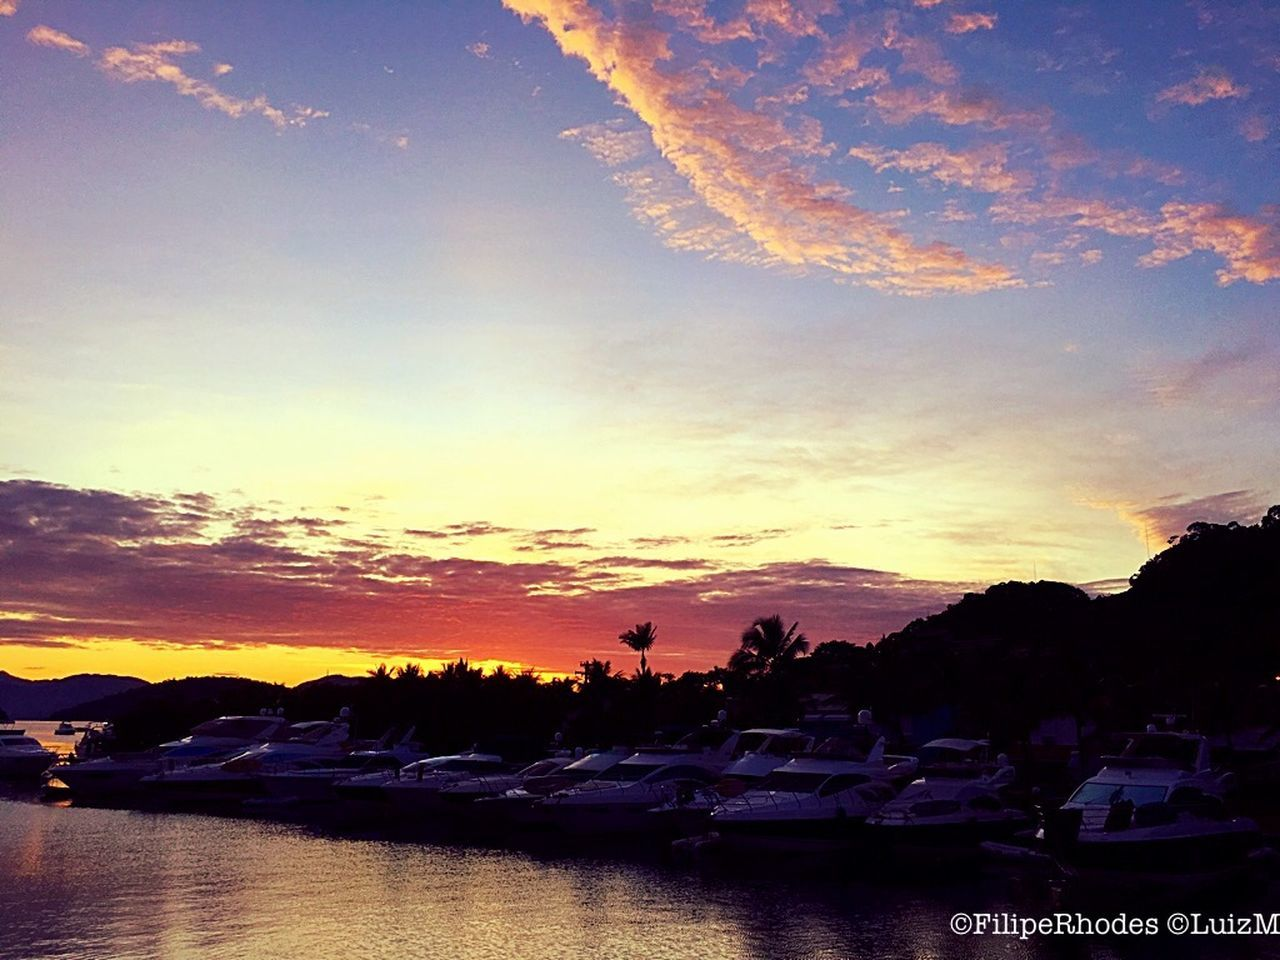 sunset, sky, water, scenics, silhouette, cloud - sky, beauty in nature, dramatic sky, nature, tranquility, tranquil scene, outdoors, sea, tree, nautical vessel, no people, mountain, building exterior, day